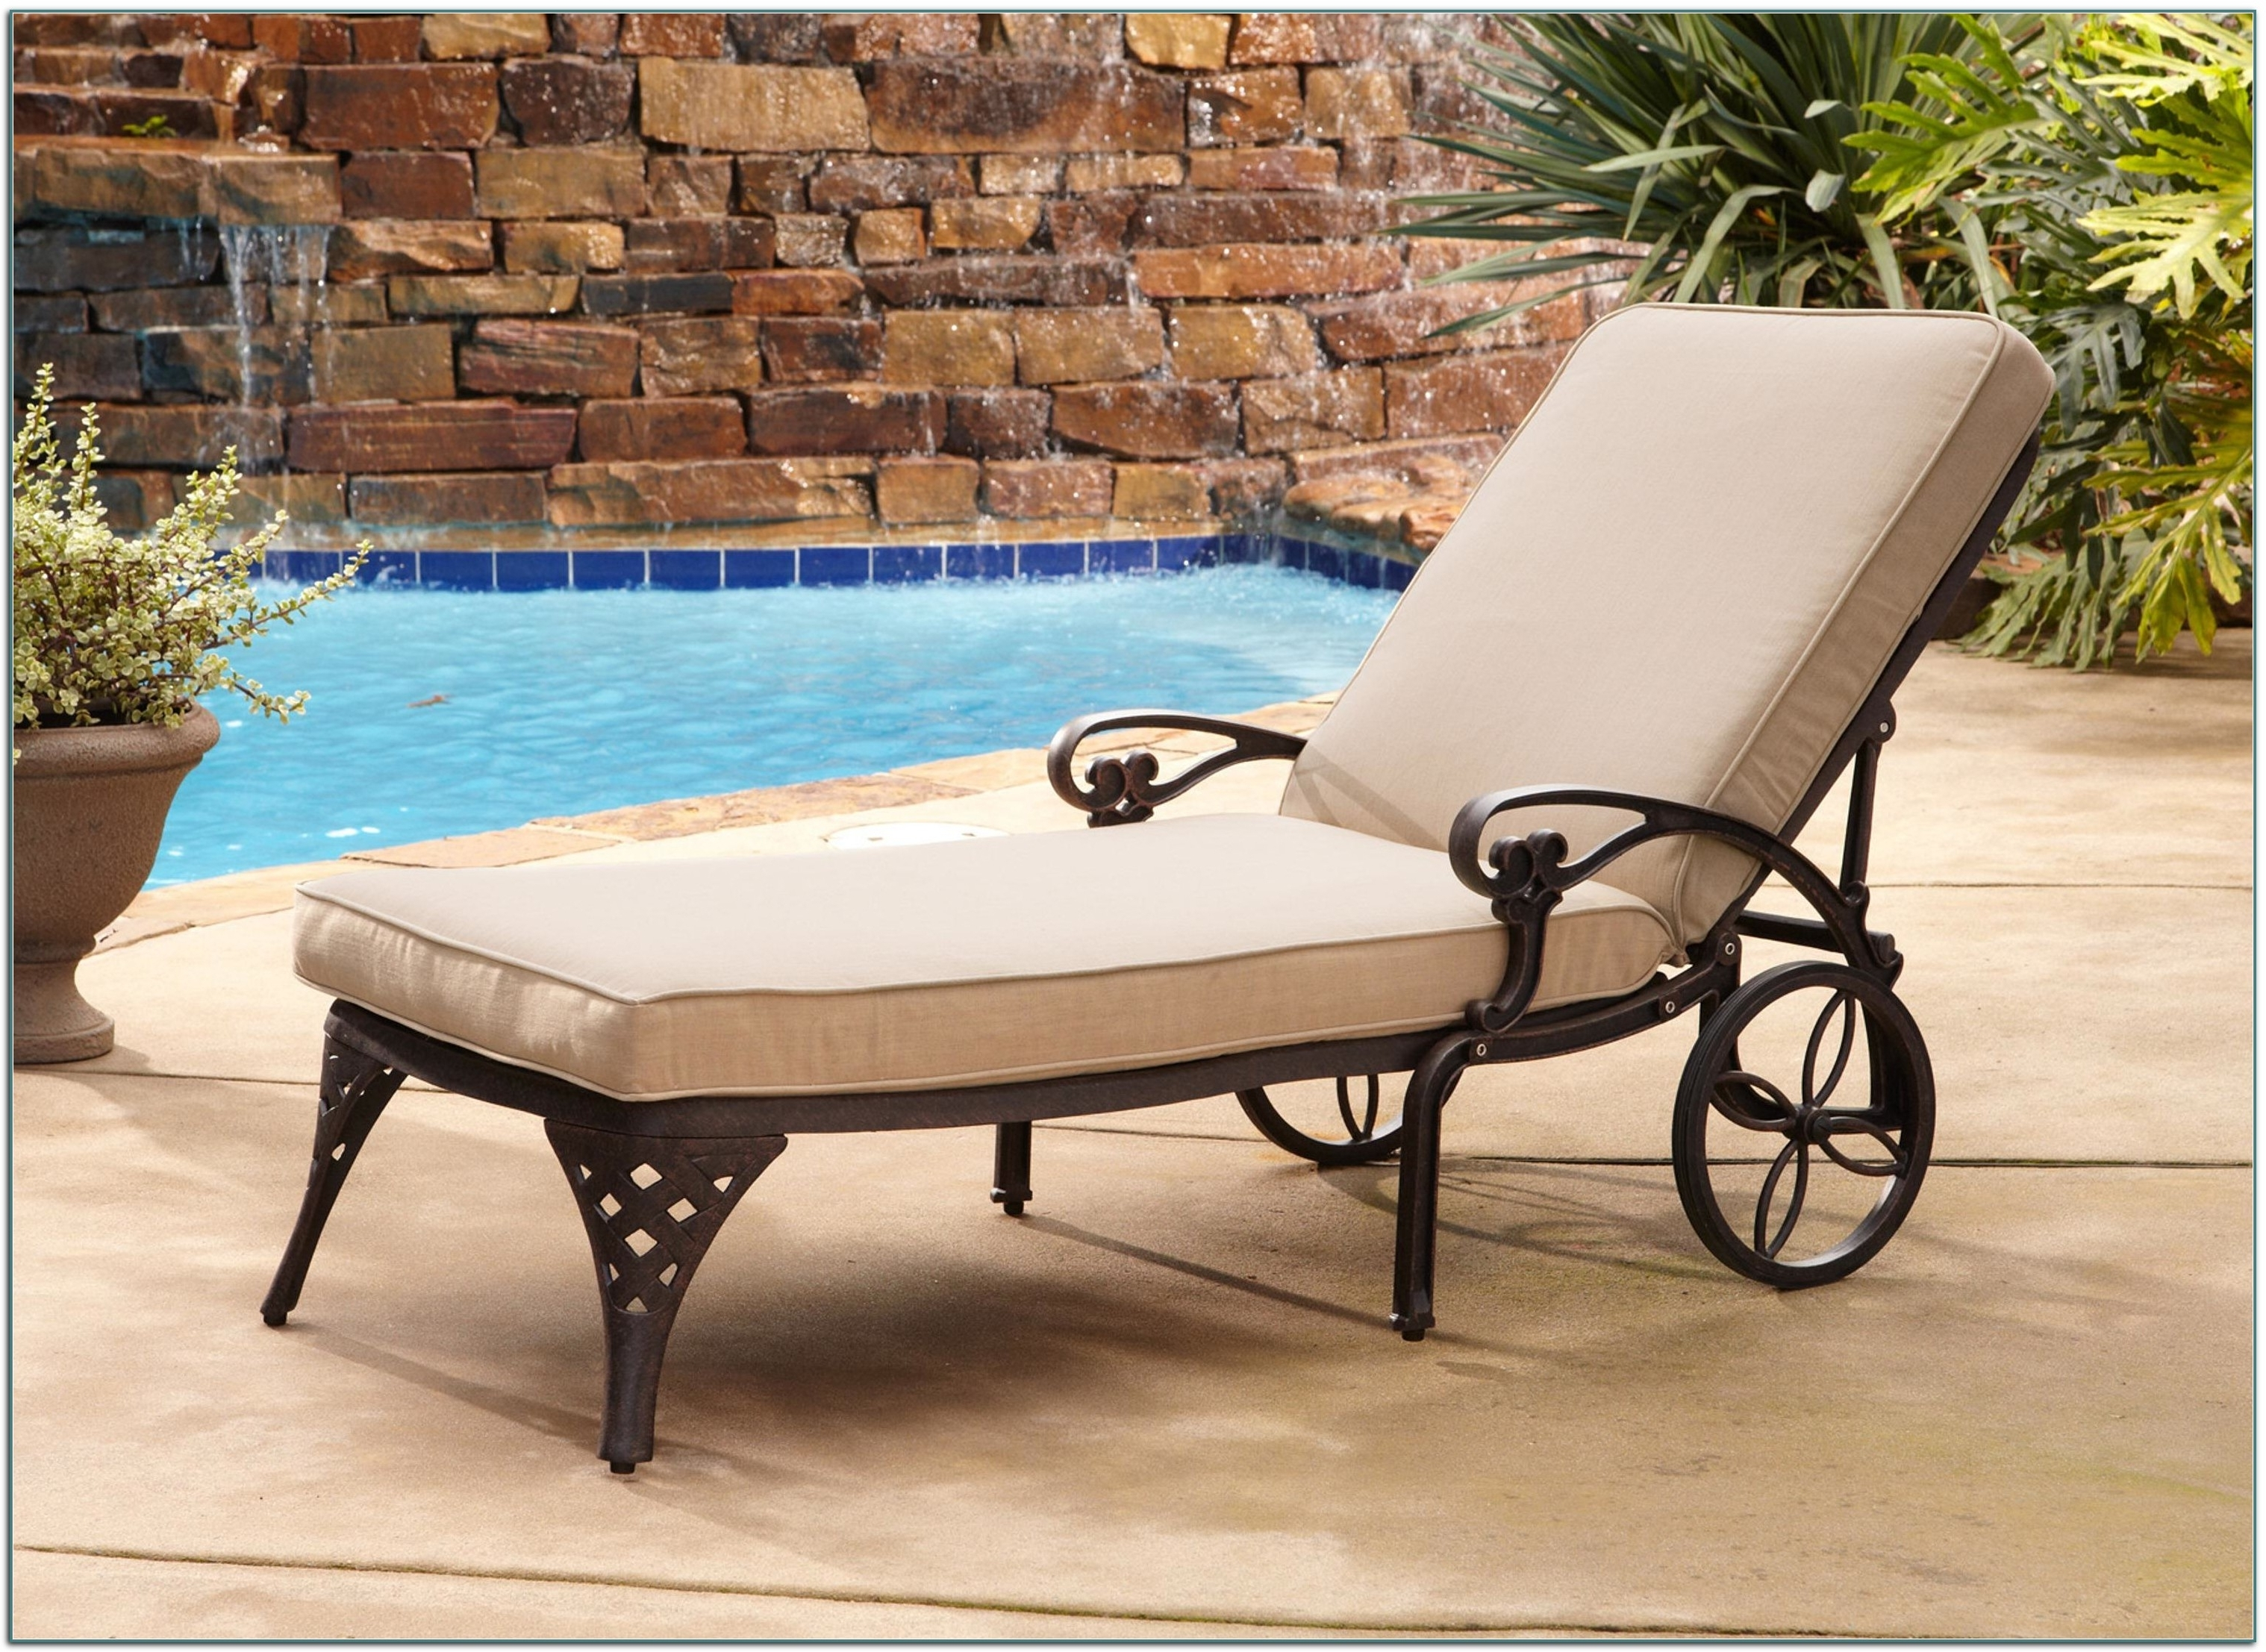 Chaise Lounge Chairs Outdoor Pool • Lounge Chairs Ideas For Latest Outdoor Chaise Lounge Chairs At Walmart (View 8 of 15)